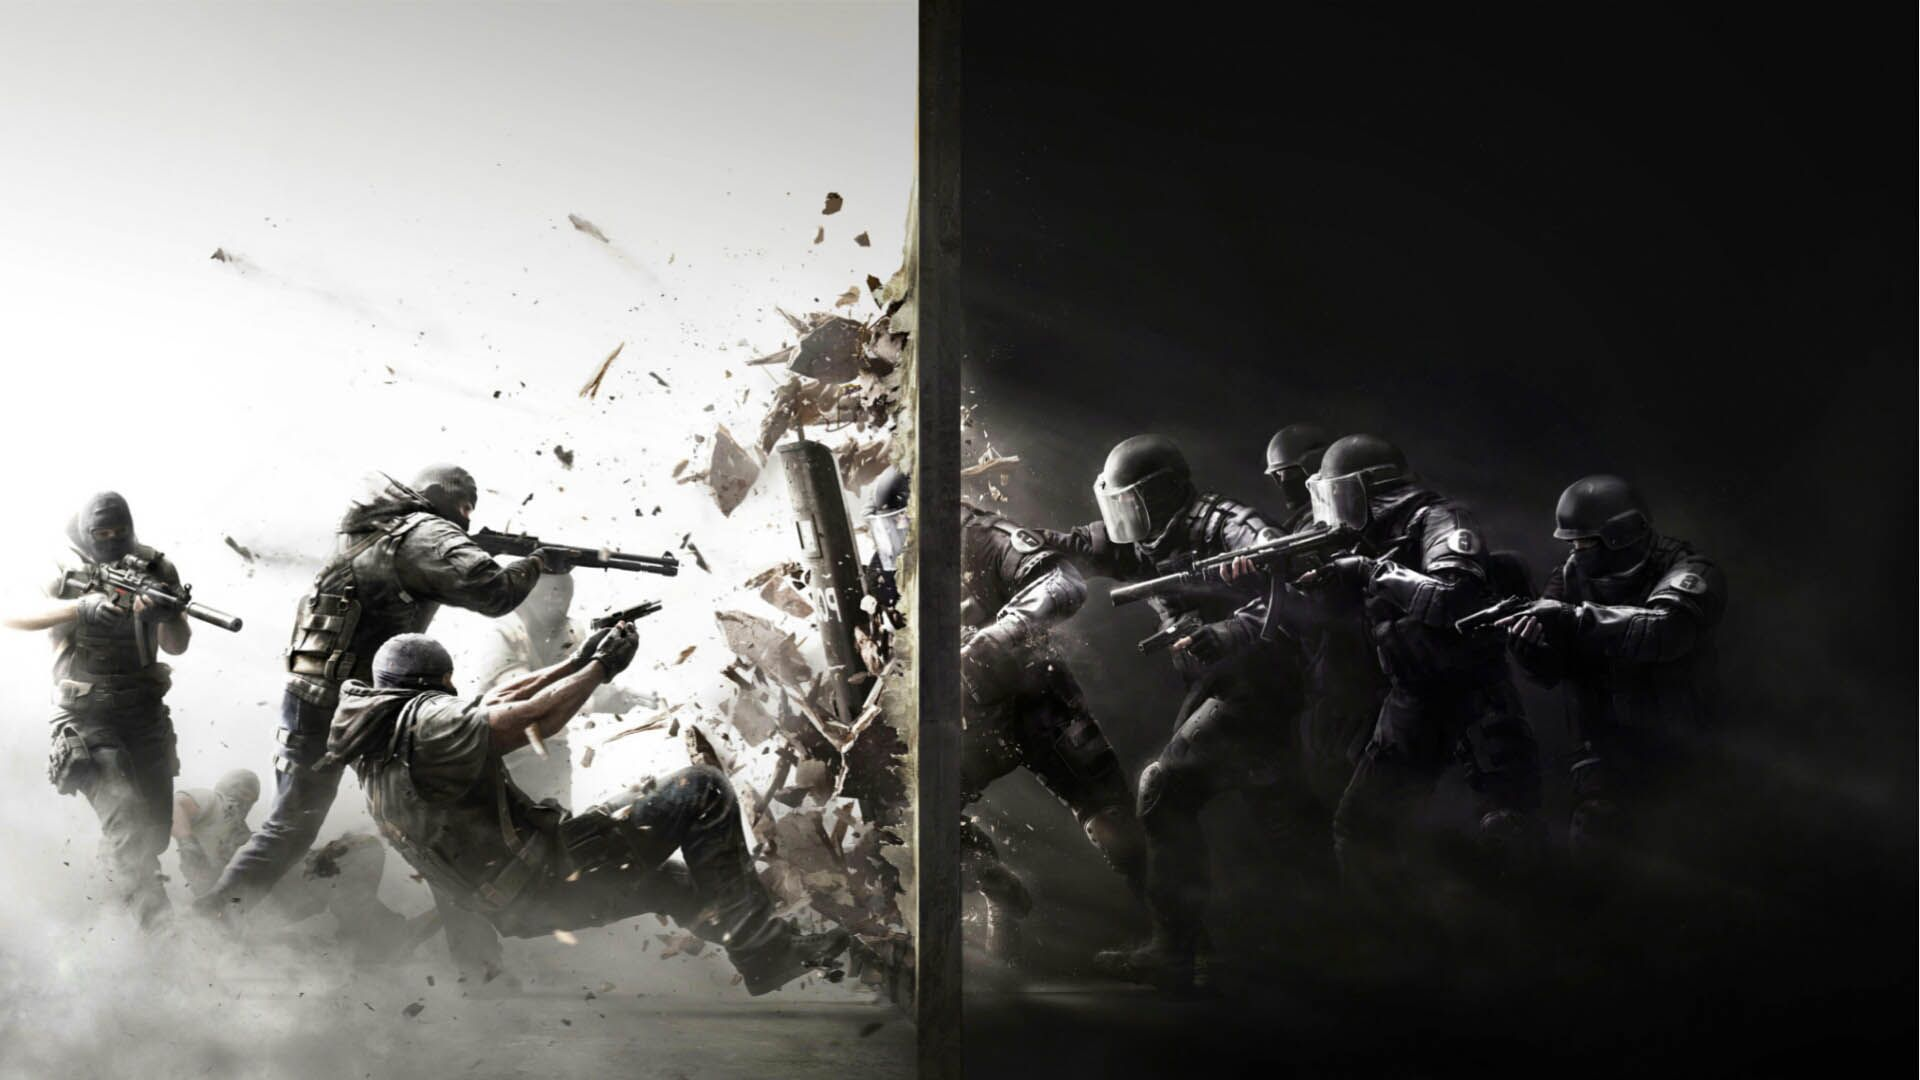 Rainbow Six Siege Battle Game Hd Wallpaper